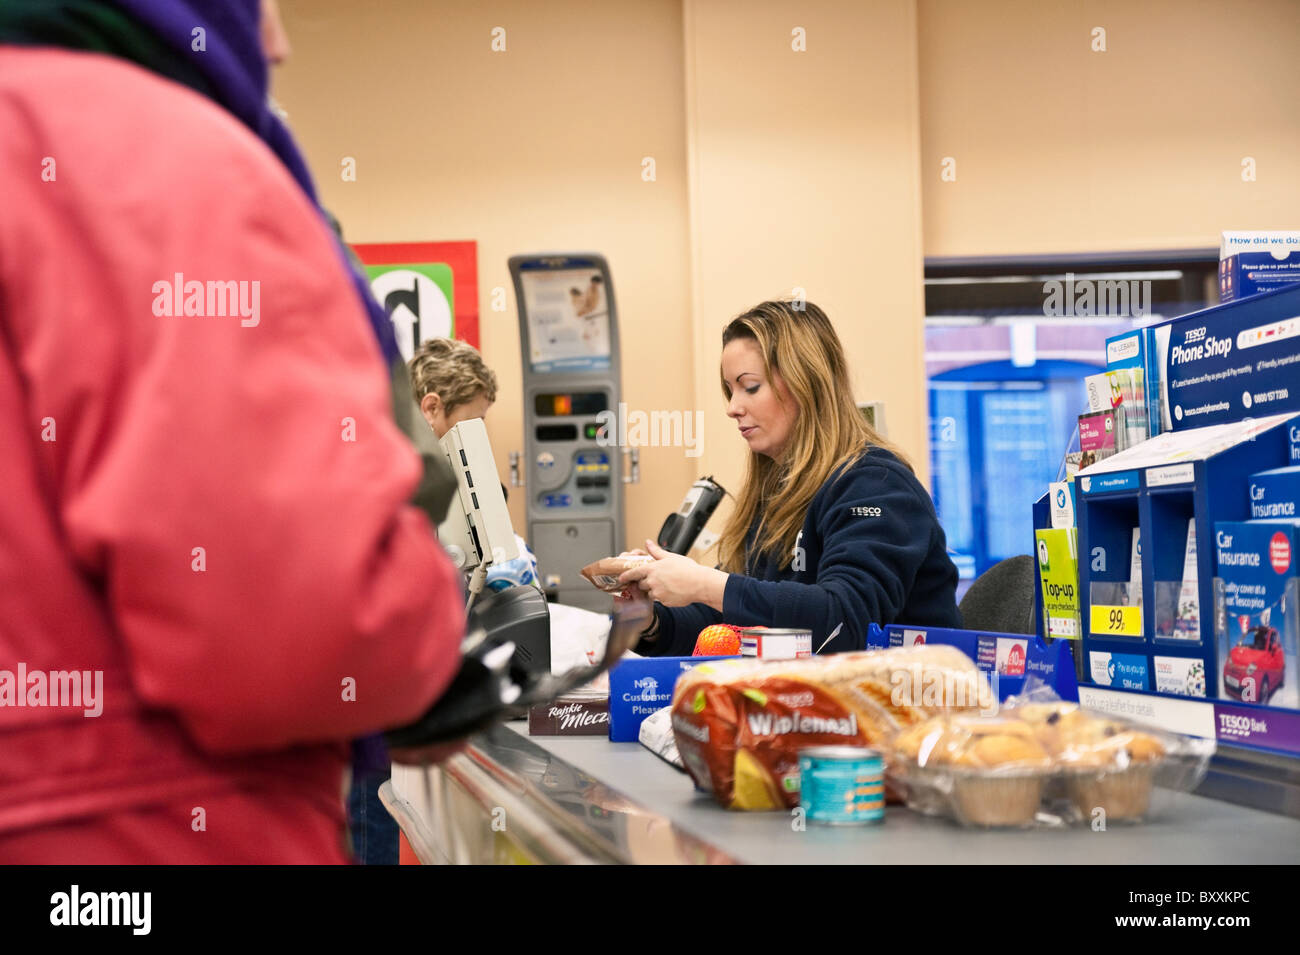 Check out operator in a Tesco supermarket, UK. Checkout cash till inside a store. Food items on conveyor belt at - Stock Image